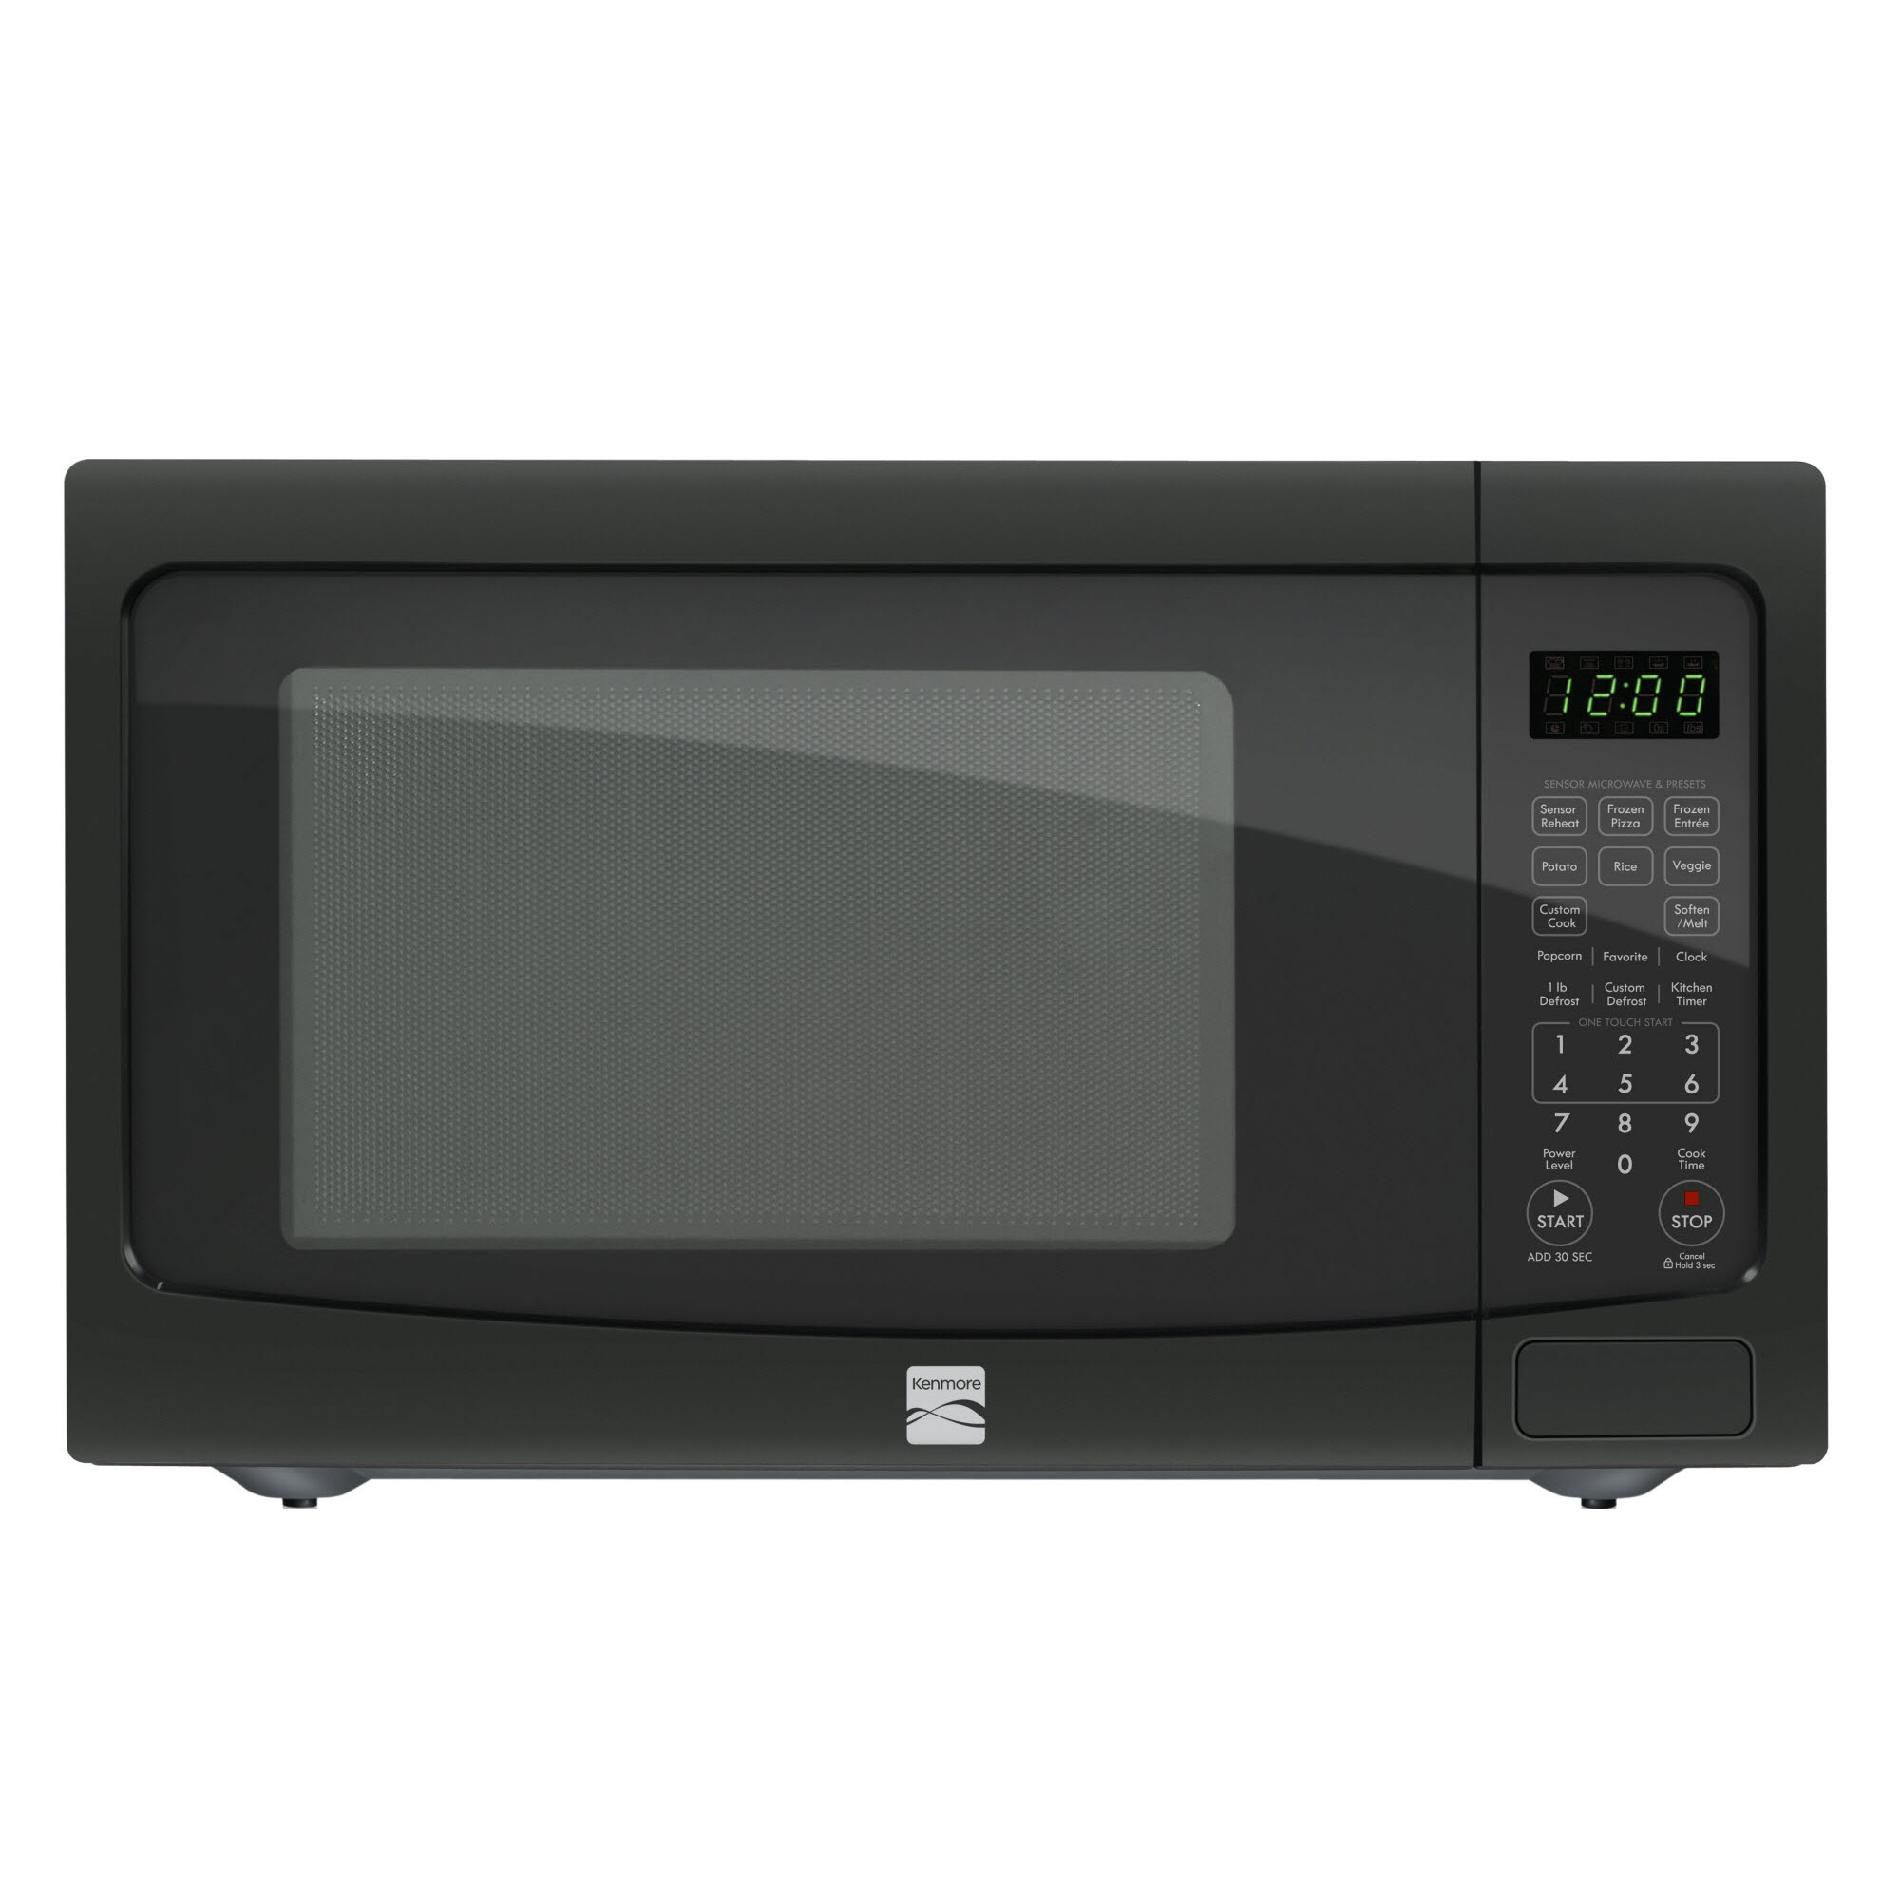 KENMORE MICROWAVE Parts | Model 40572129310 | Sears PartsDirect